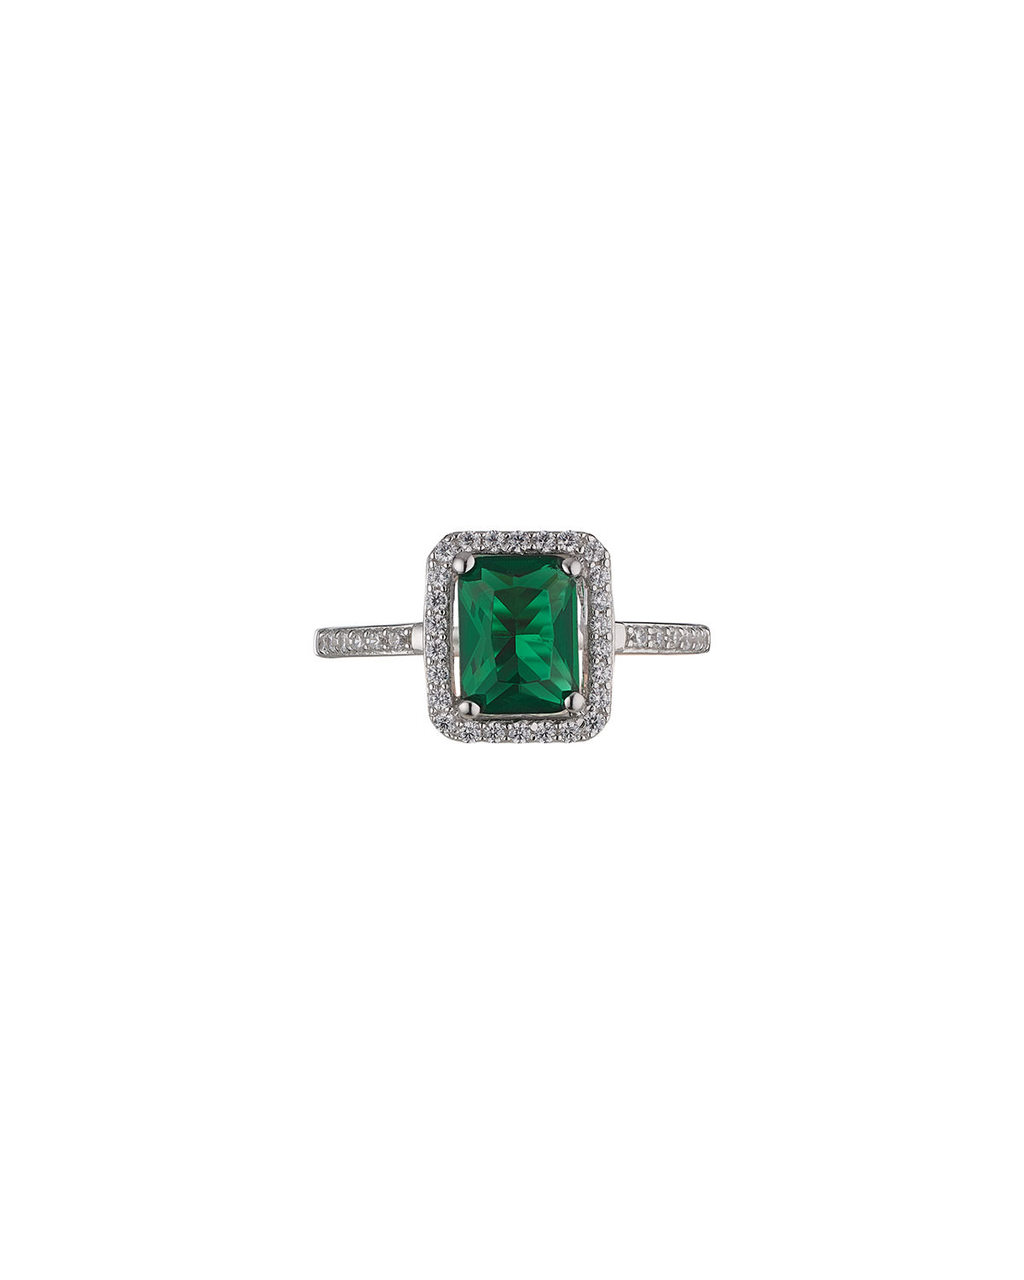 Emerald Rectangle Ring - predominant colour: emerald green; secondary colour: silver; occasions: evening; style: cocktail; size: large/oversized; material: chain/metal; finish: metallic; embellishment: crystals/glass; season: s/s 2016; wardrobe: event